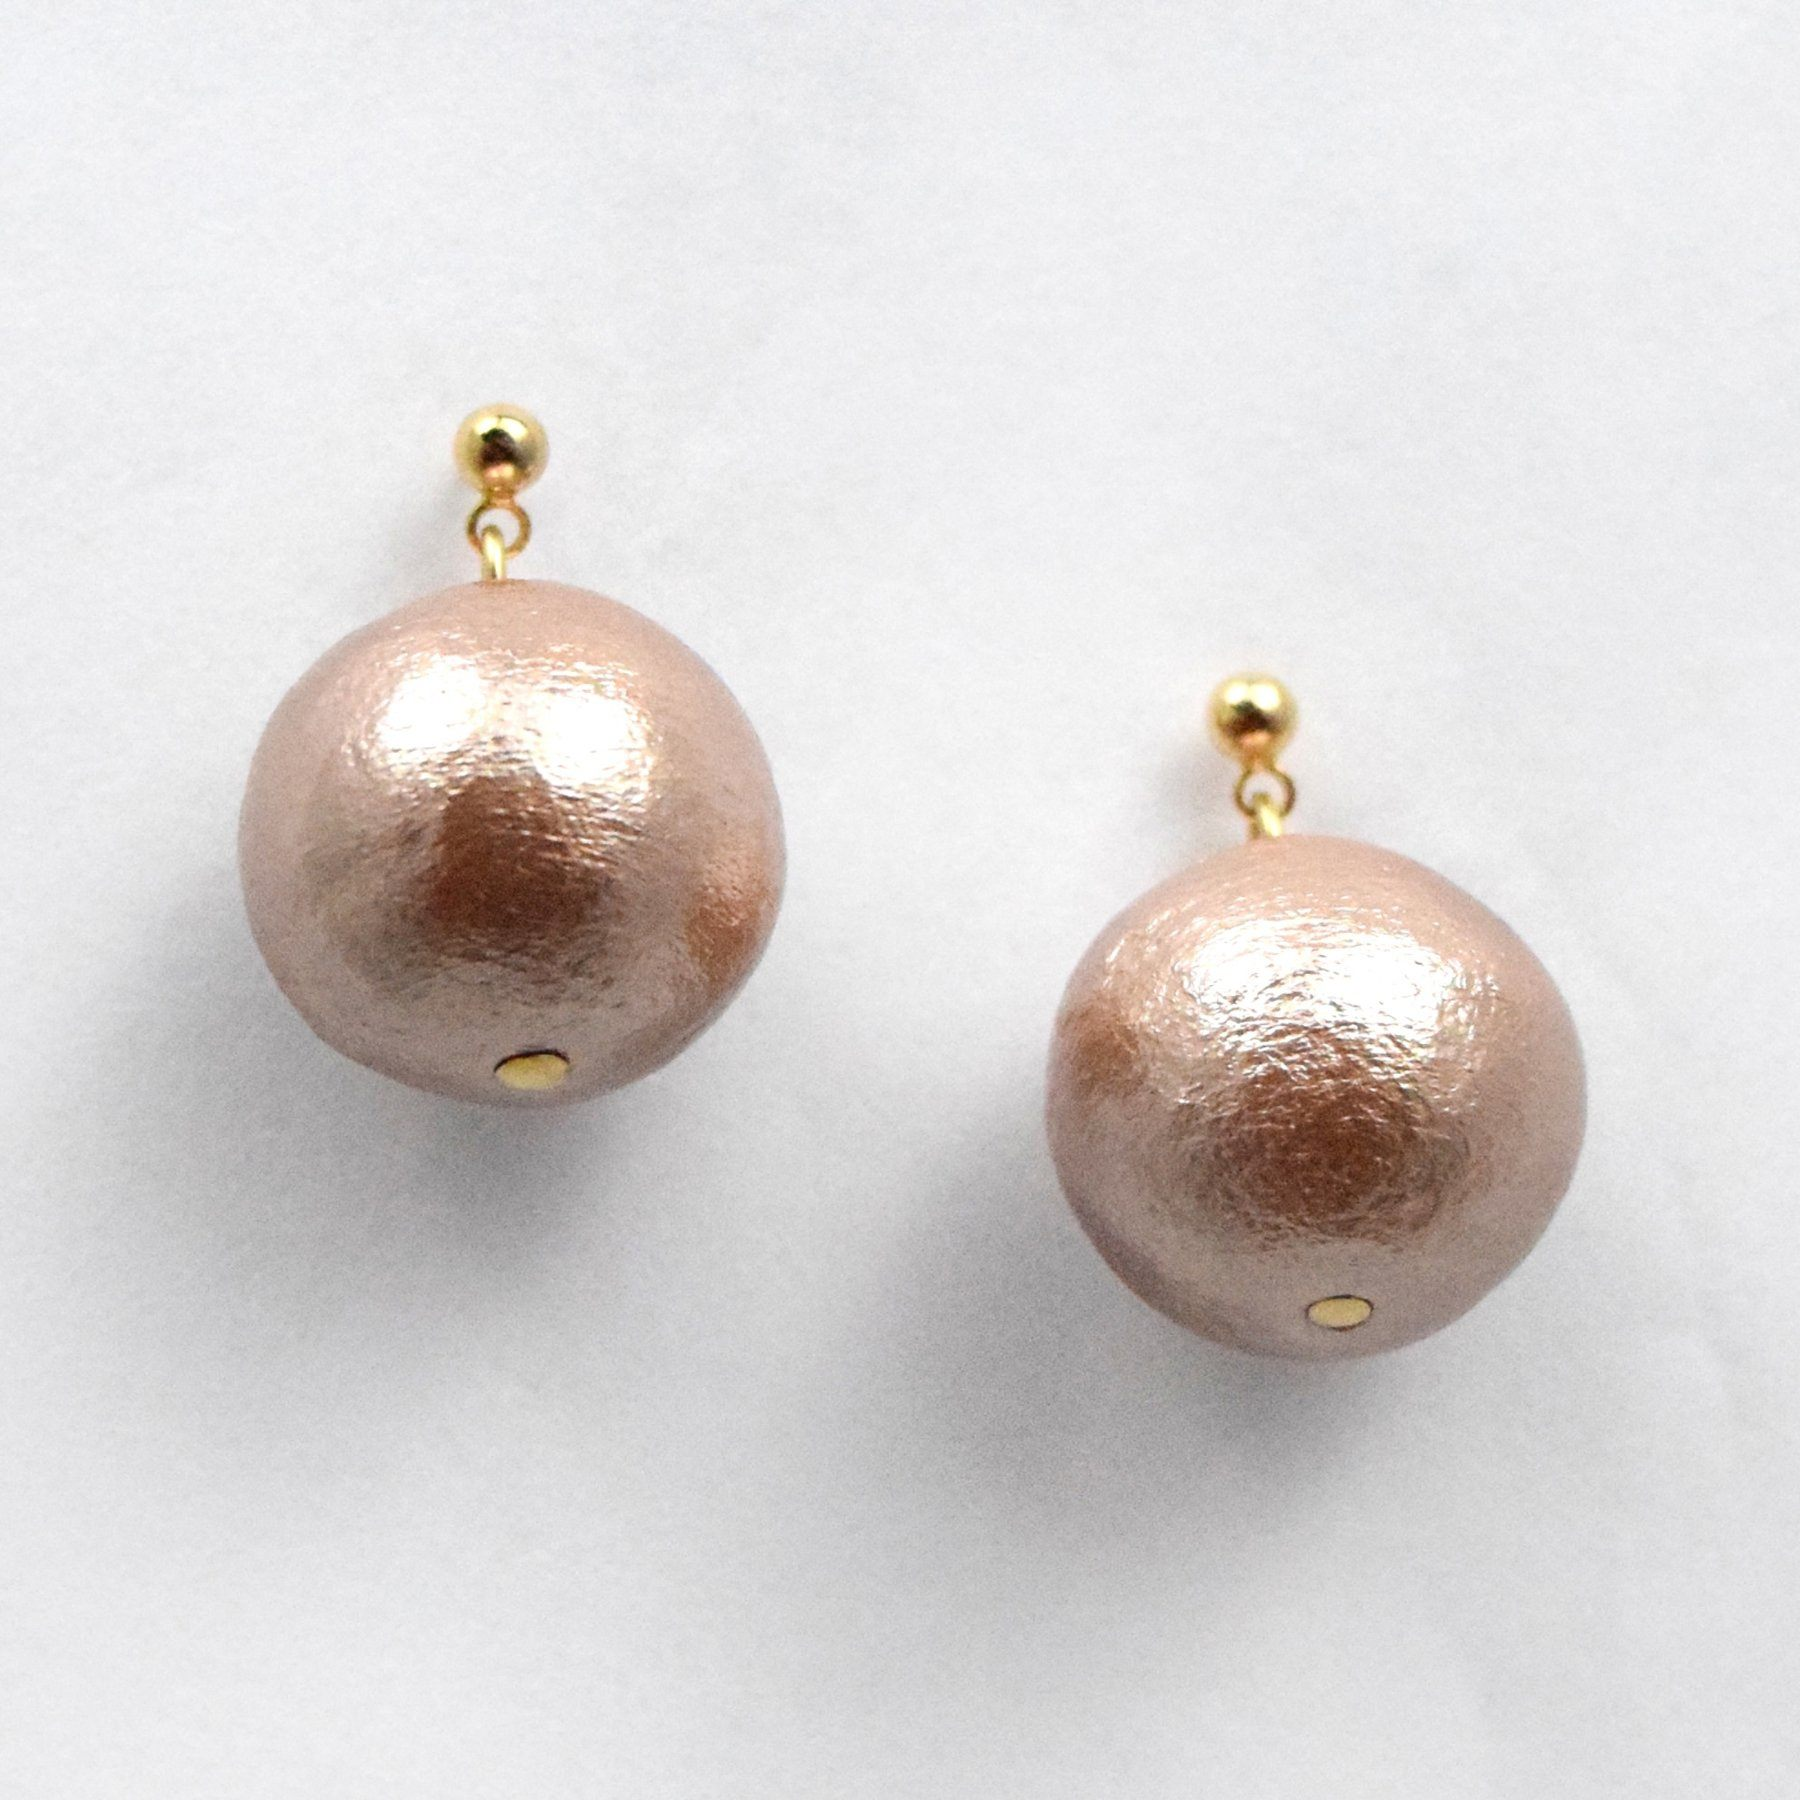 Close detail of pearl drop earrings in bronzed gold color.